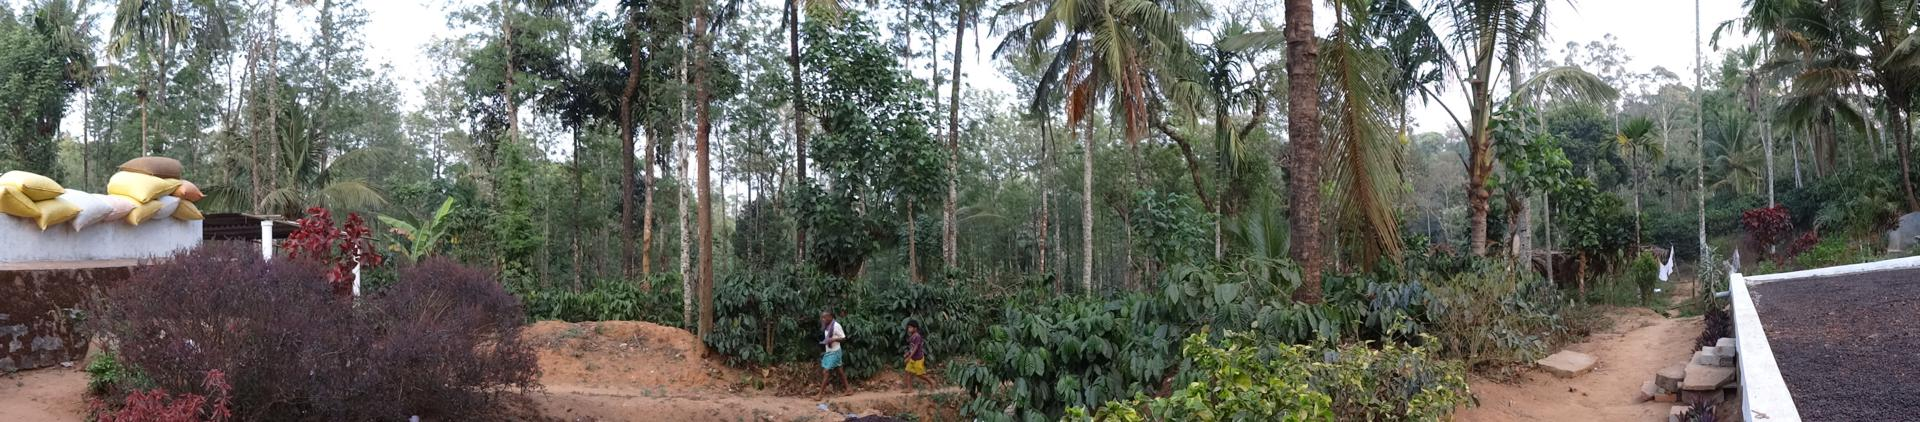 A working coffee plantation at Madikeri in the Coorg region of Karnataka